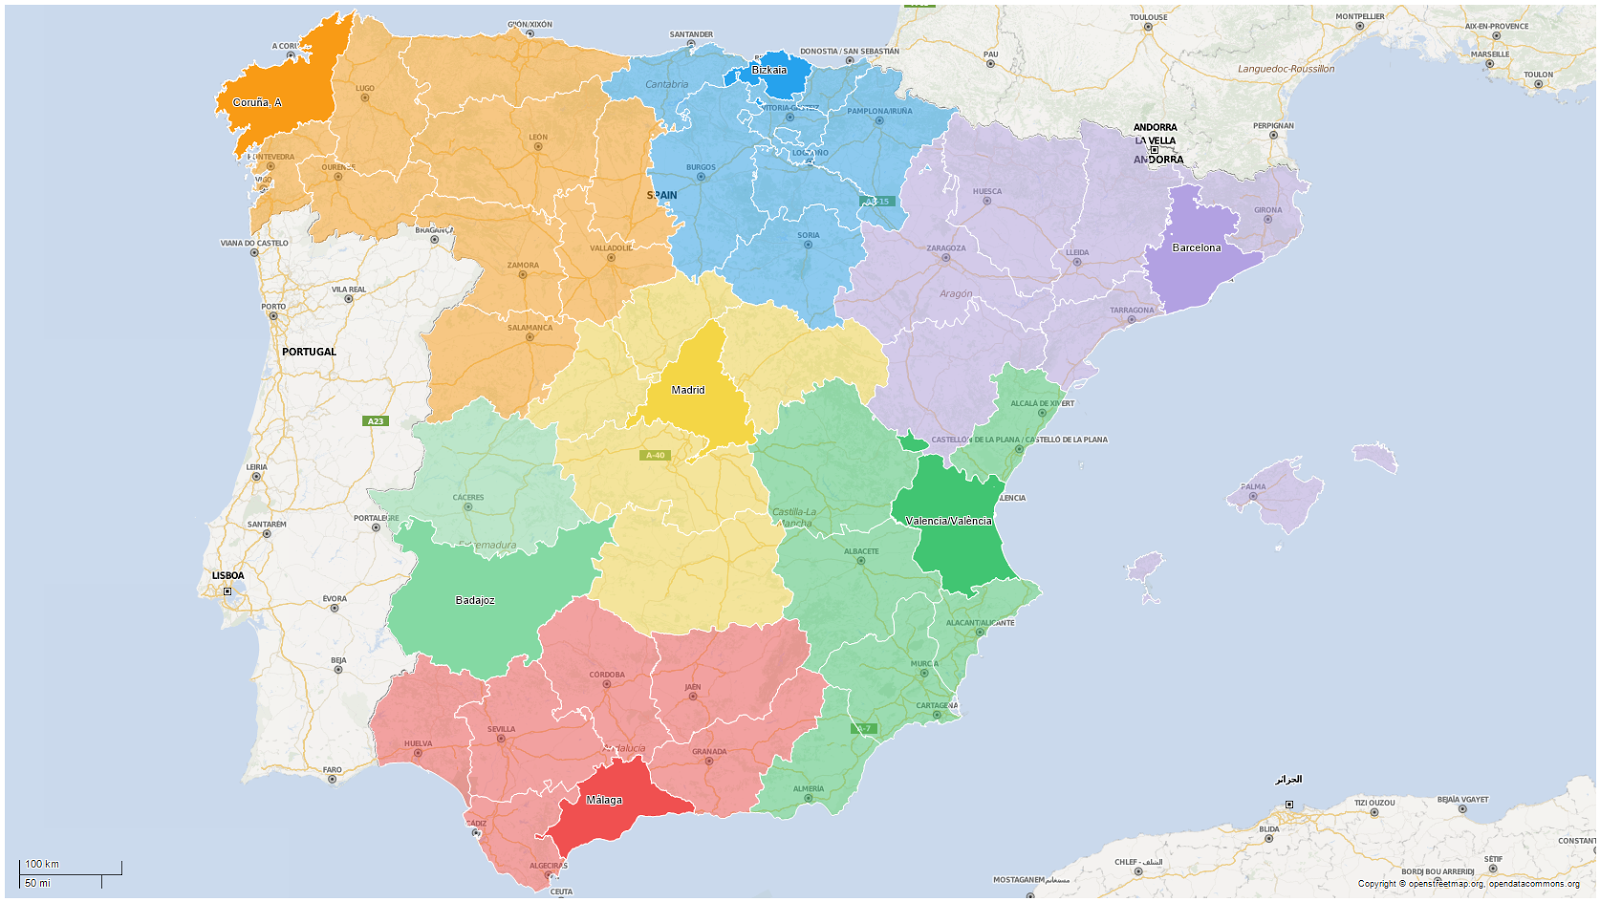 The new Spain: redrawing the country using mobility data